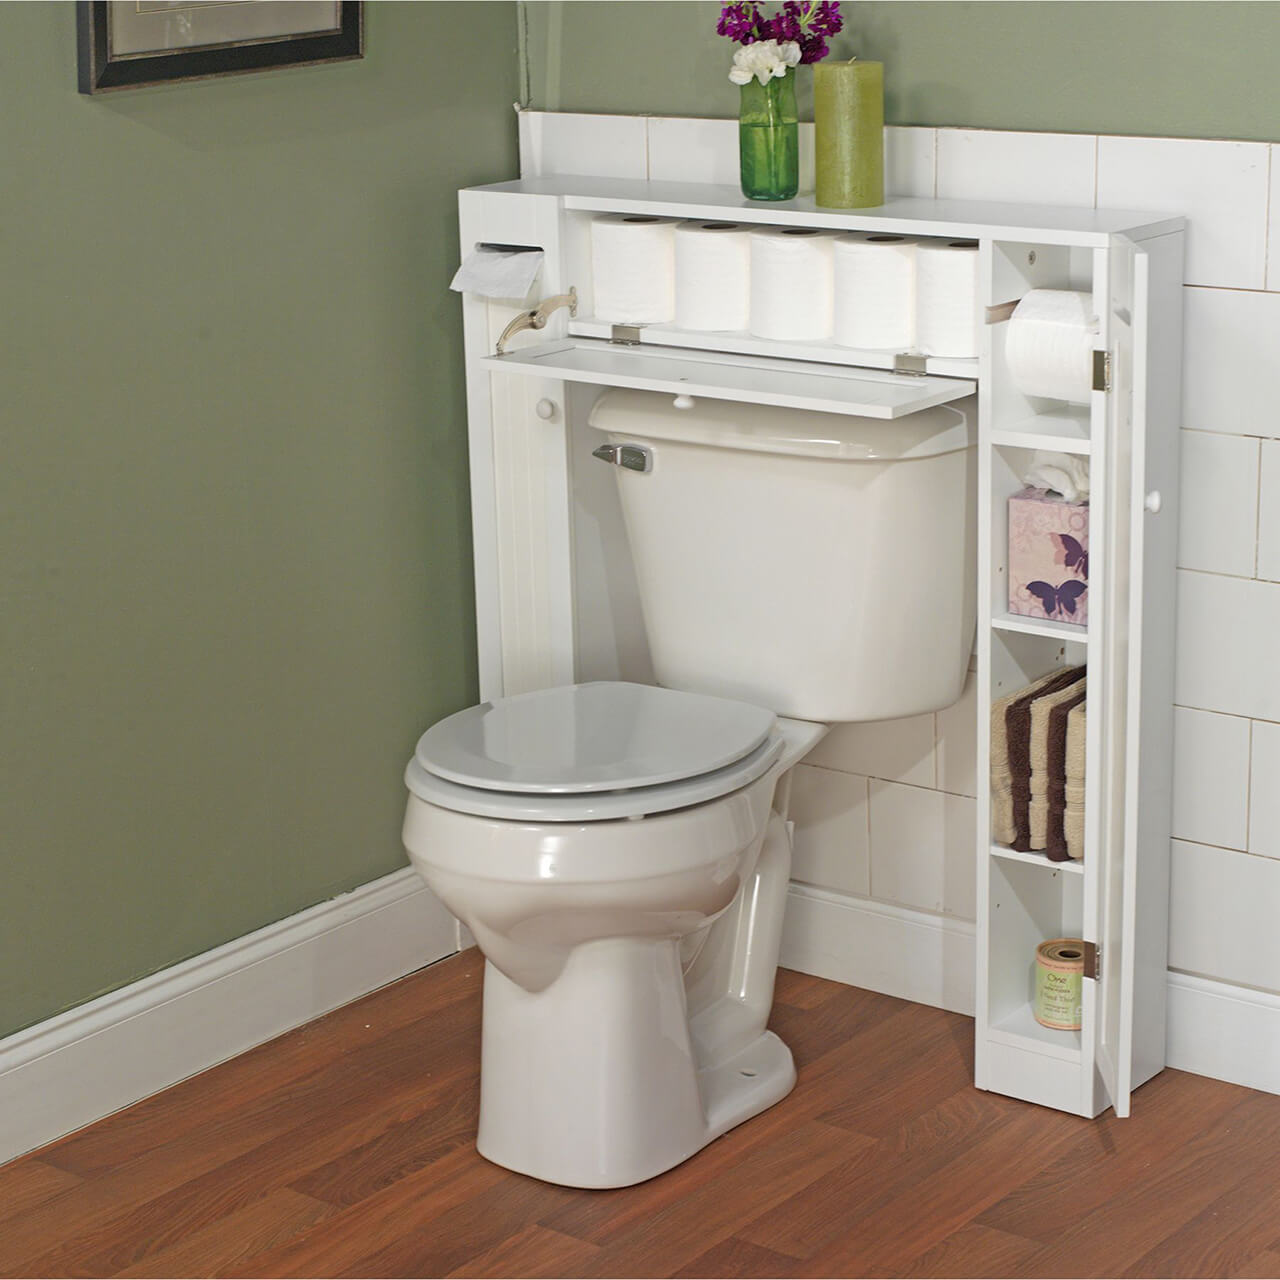 over the toilet cabinet - Bathroom Cabinets That Fit Over The Toilet